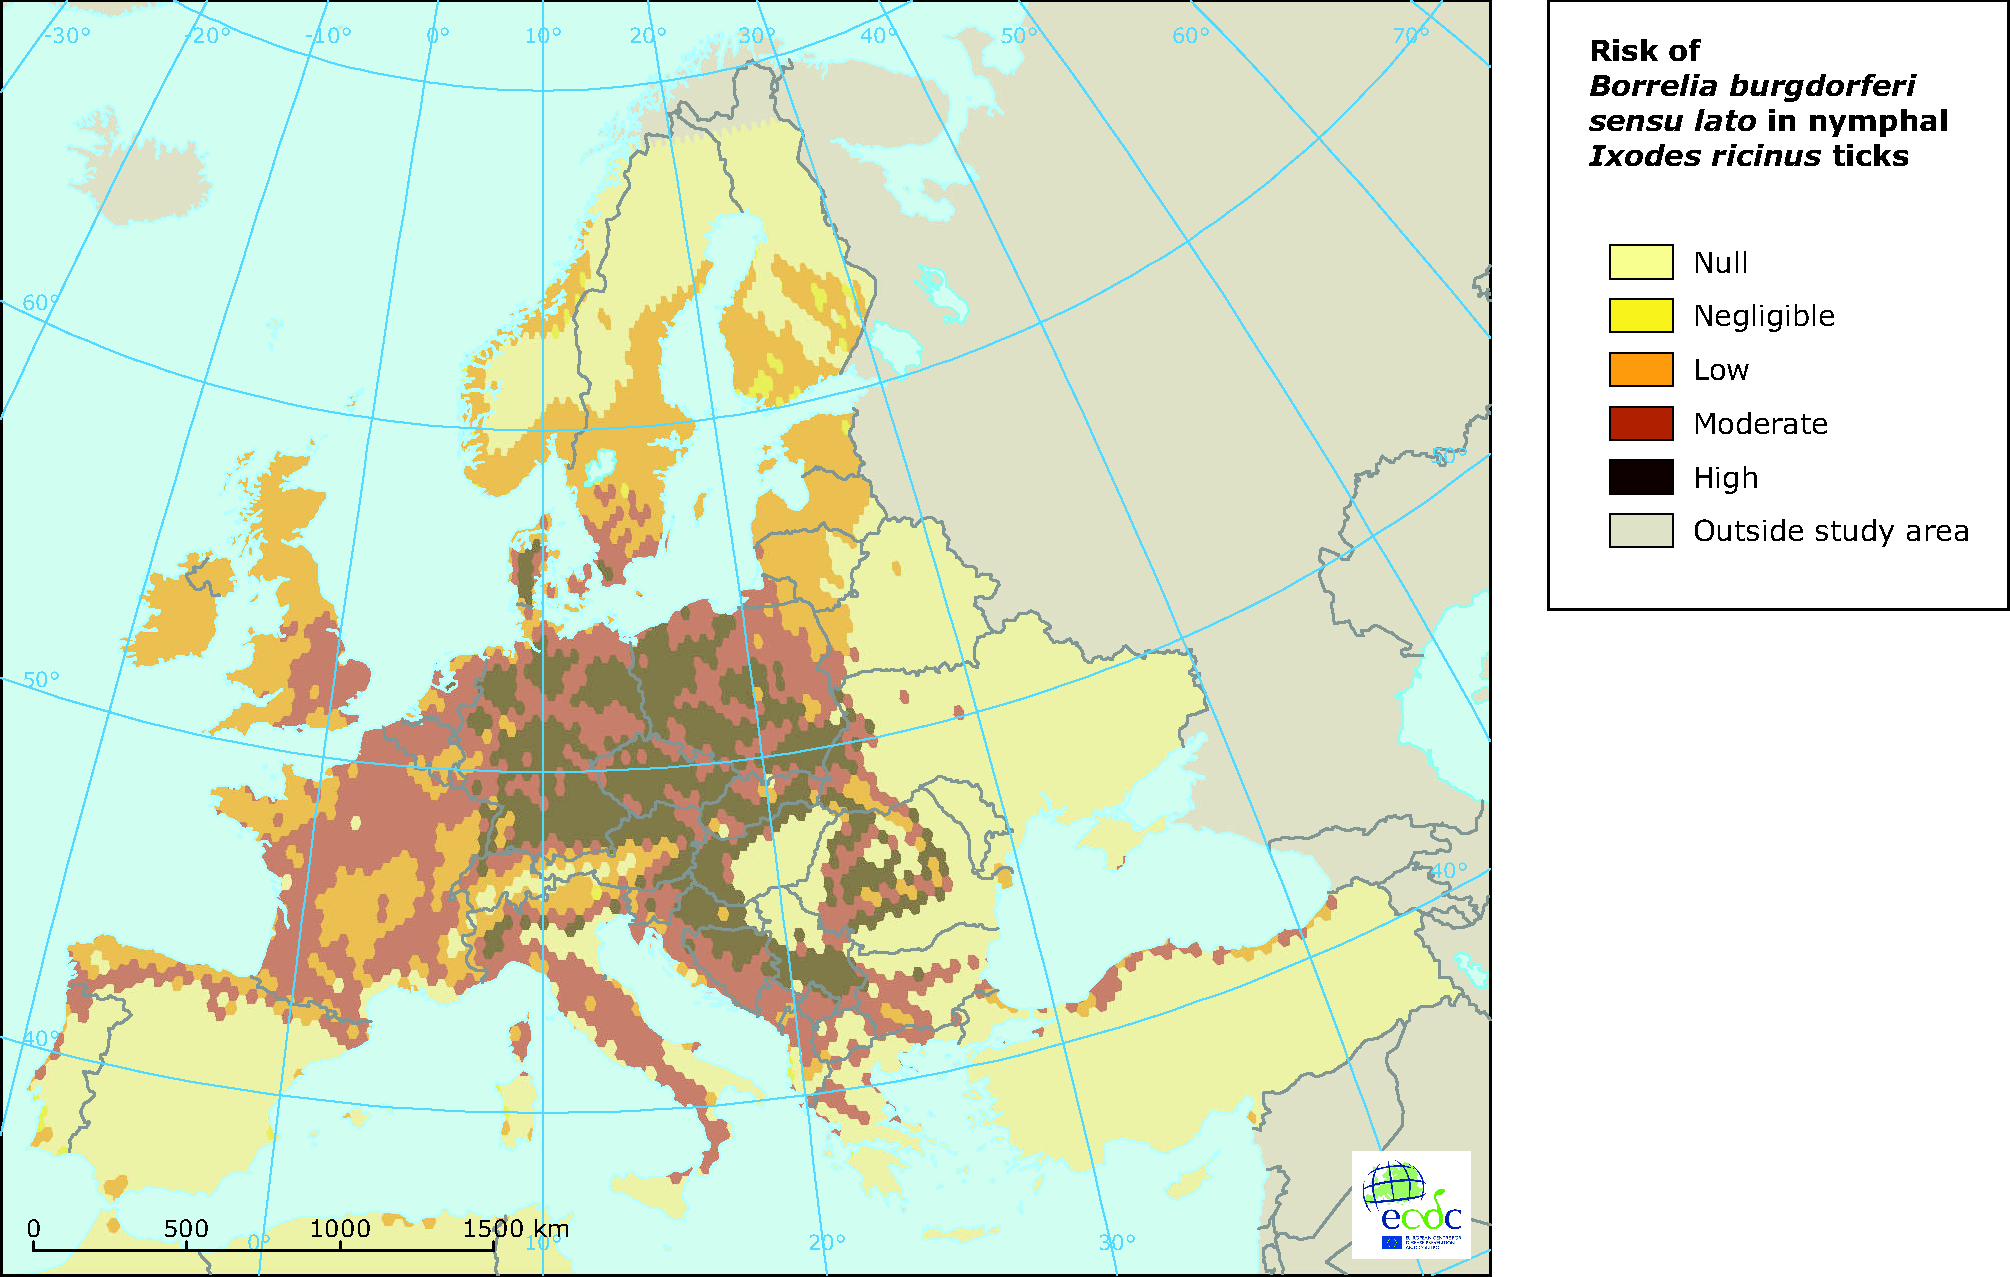 European distribution of Borrelia burgdorferi in questing I. ricinus ticks